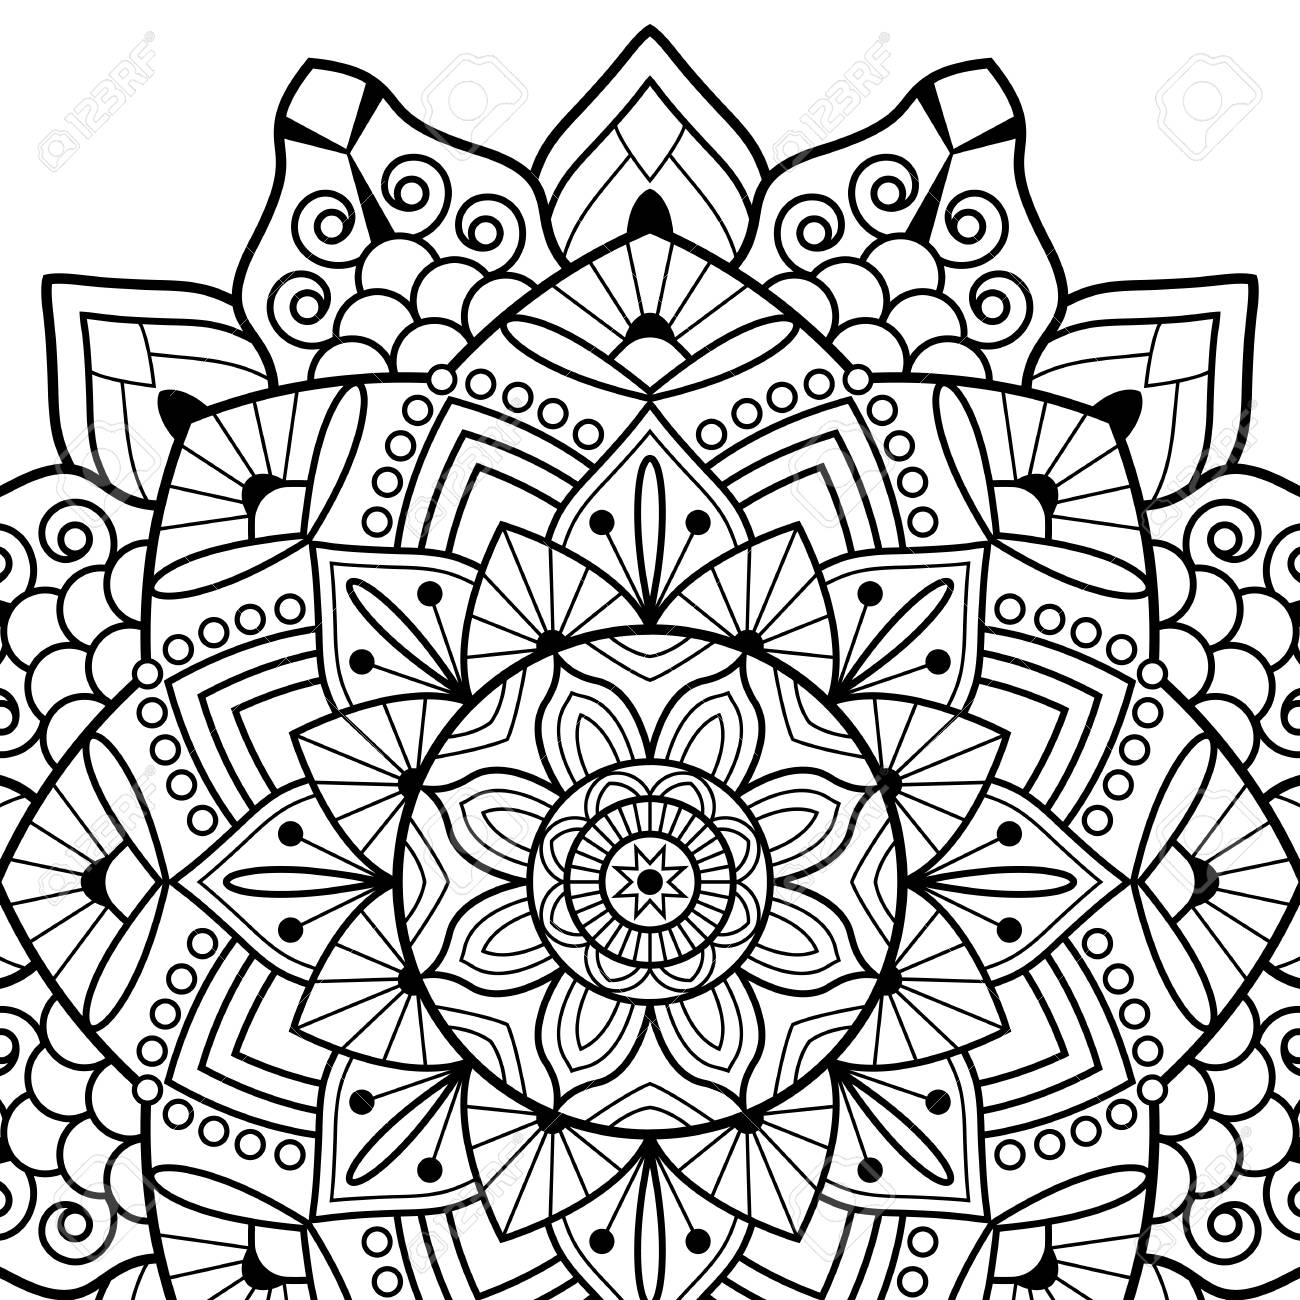 White Background Black Outline Vector Illustration Coloring Book Pages Mandala Indian Antistress Medallion Abstract Islamic Flower Arabic Henna Design